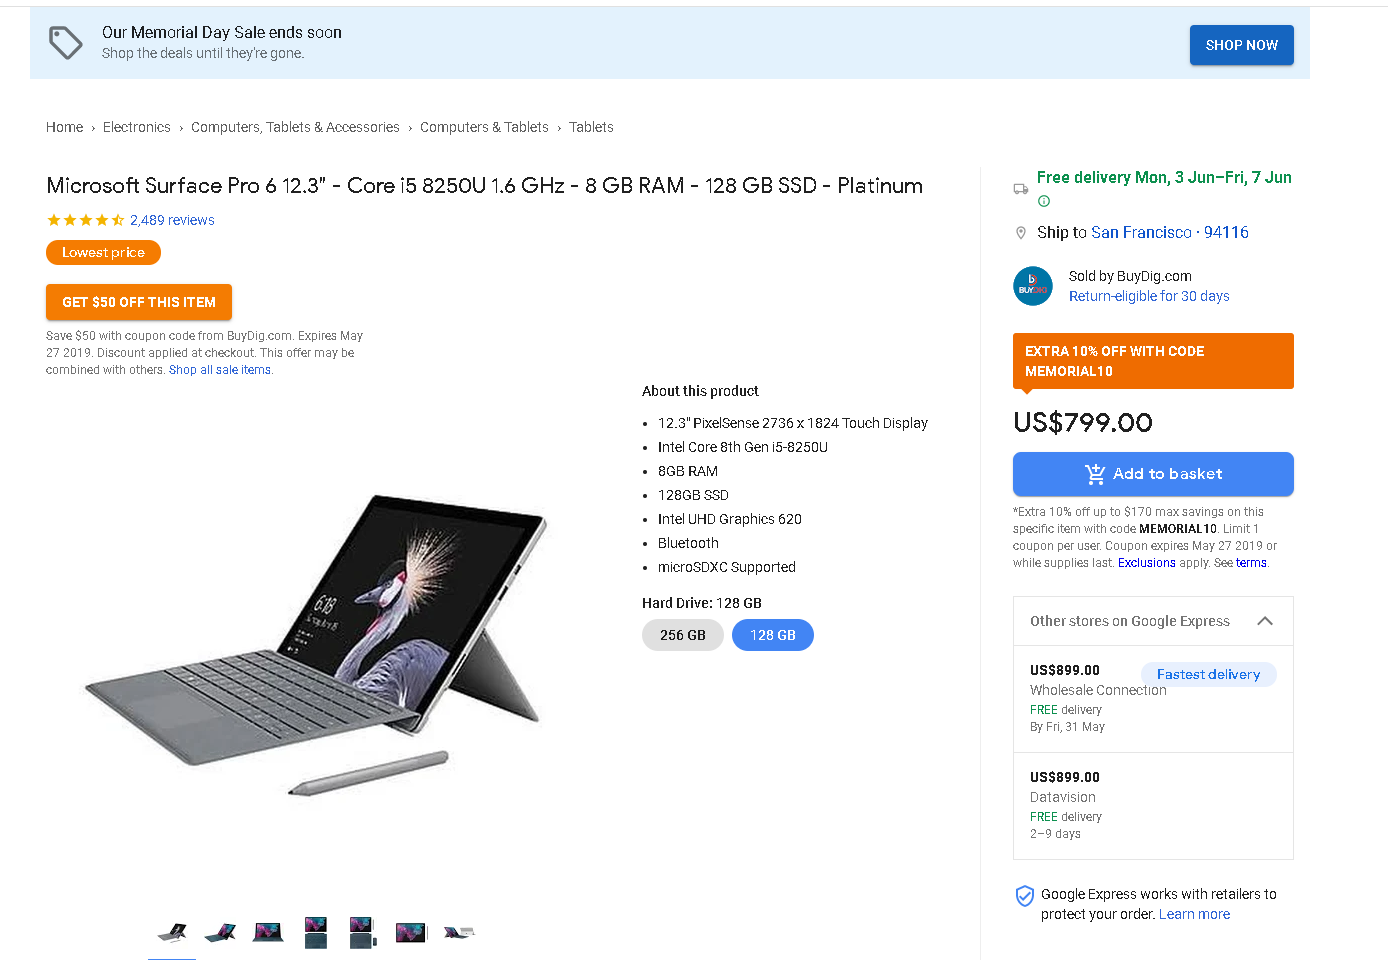 Microsoft Surface Pro 6 with Core i5, 8 GB RAM, and 128 GB